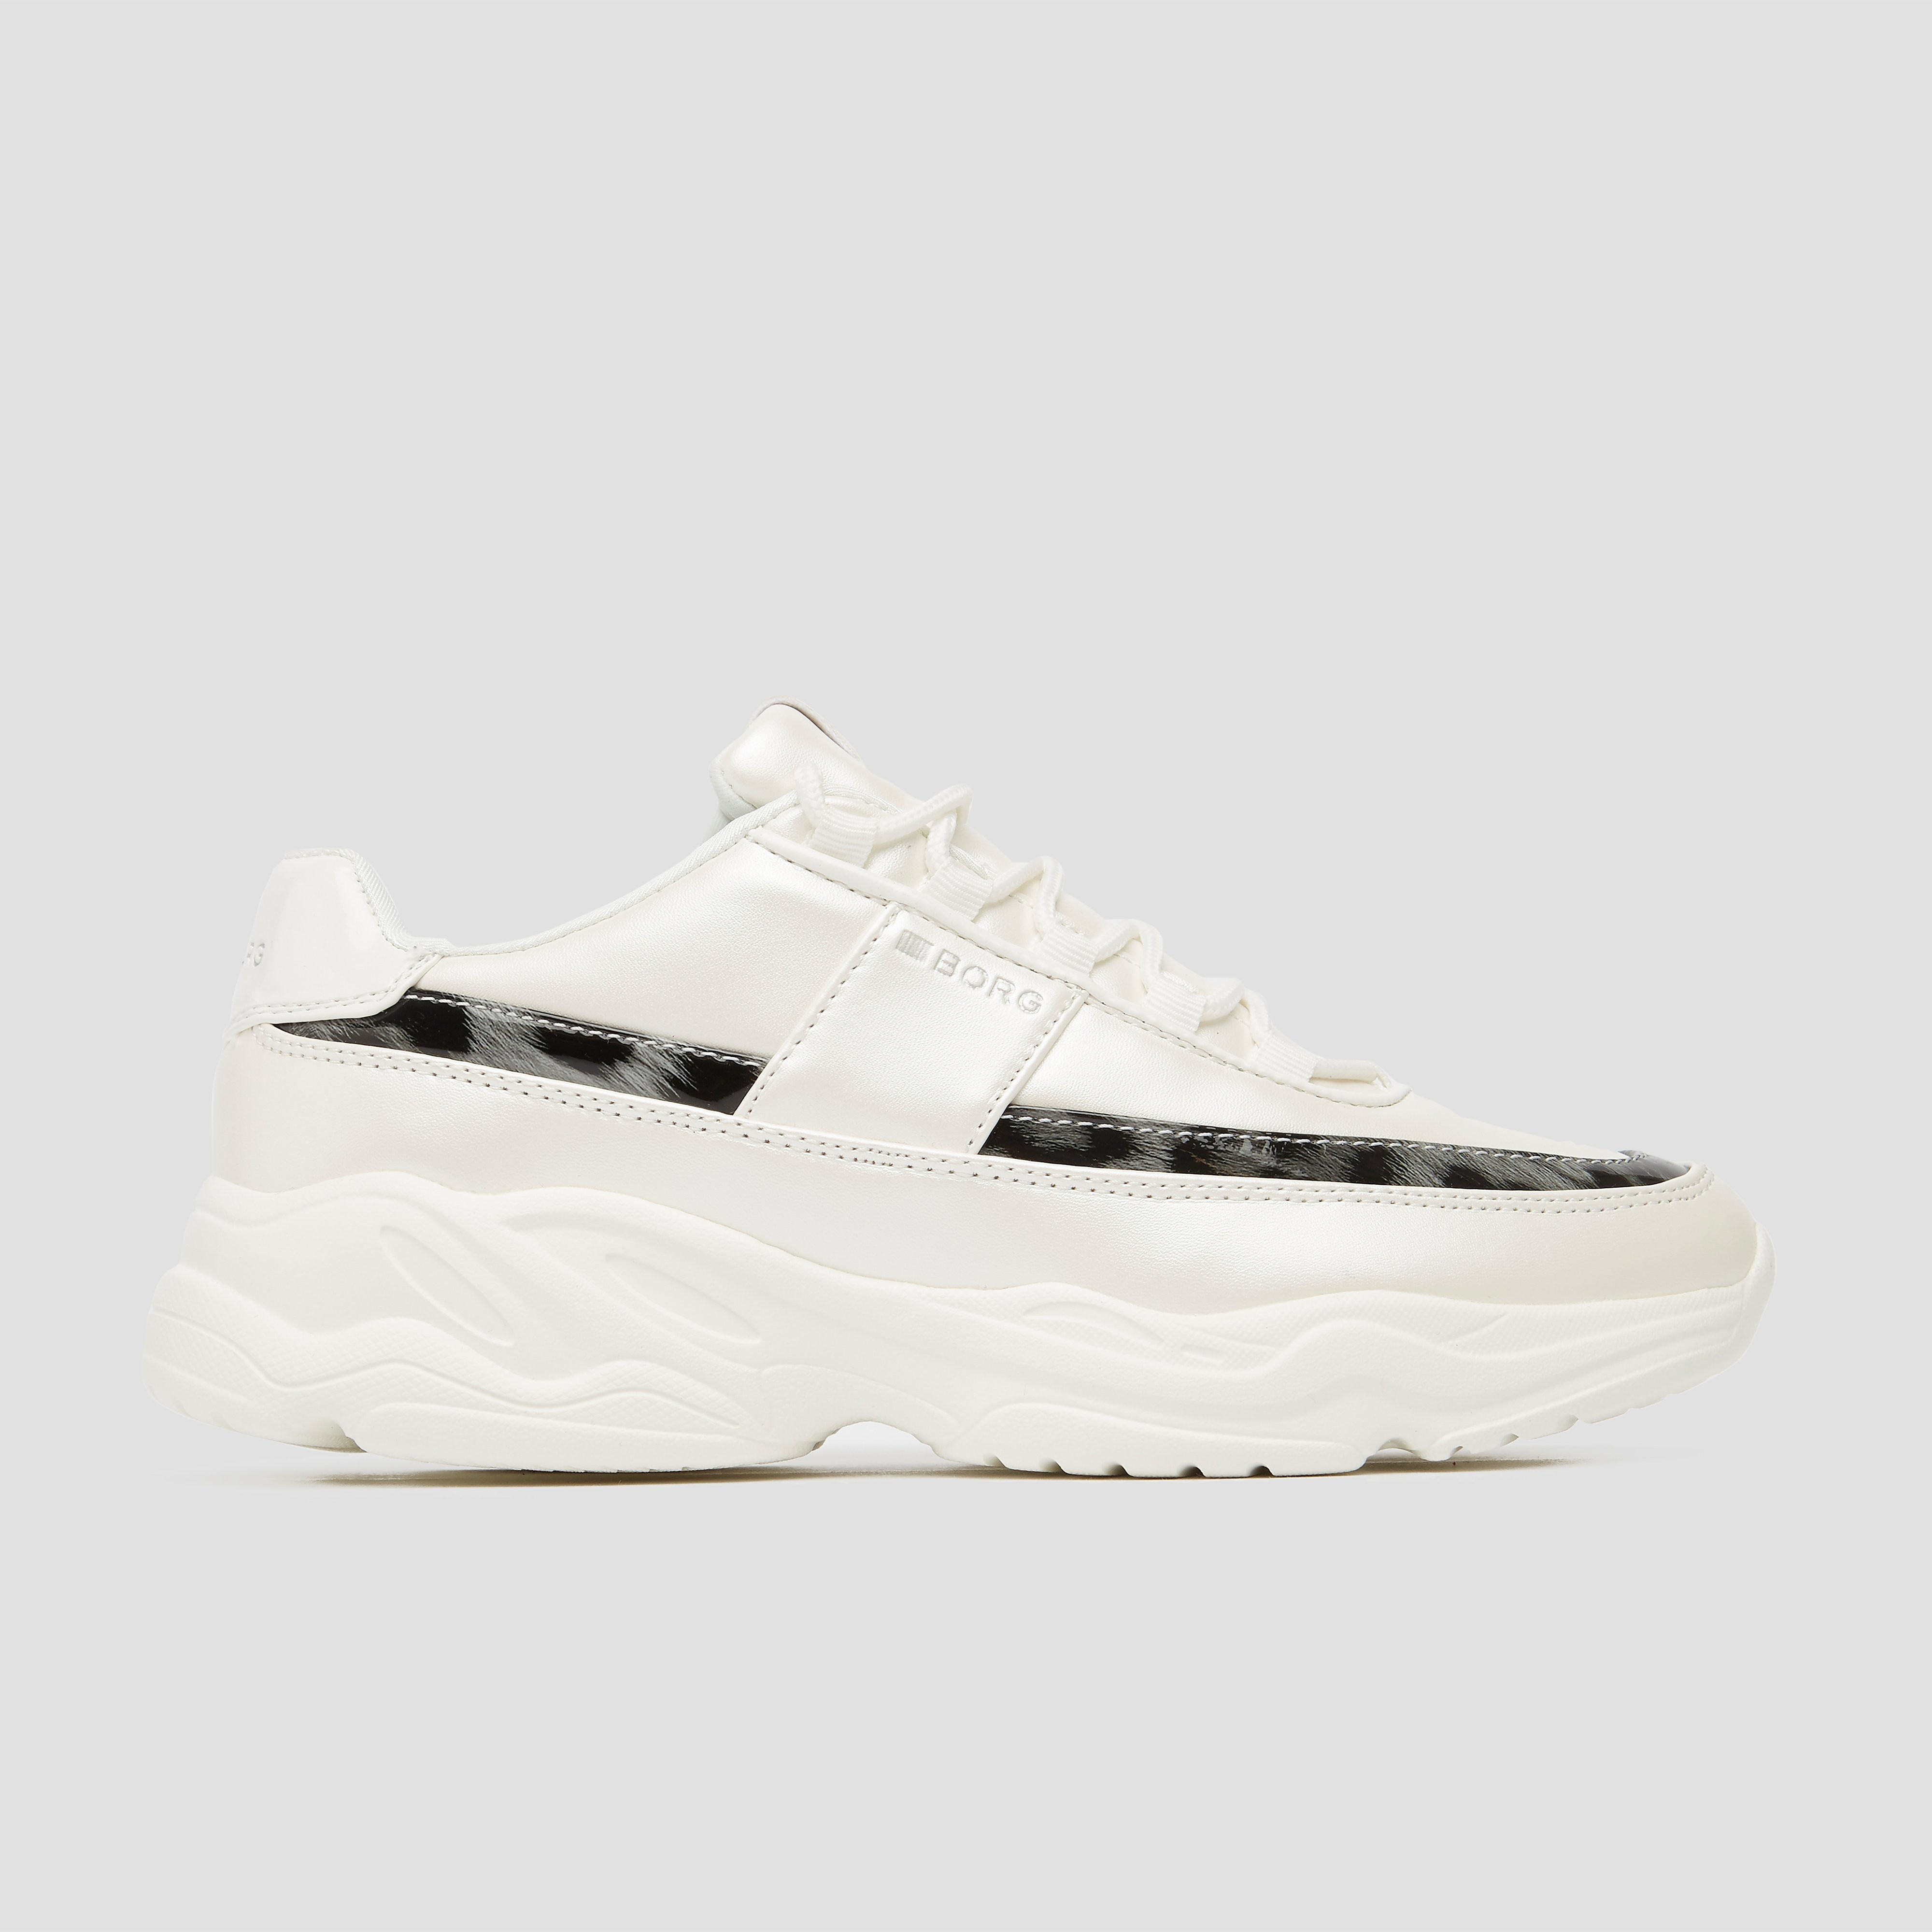 BJORN BORG X310 low sneakers wit dames Dames